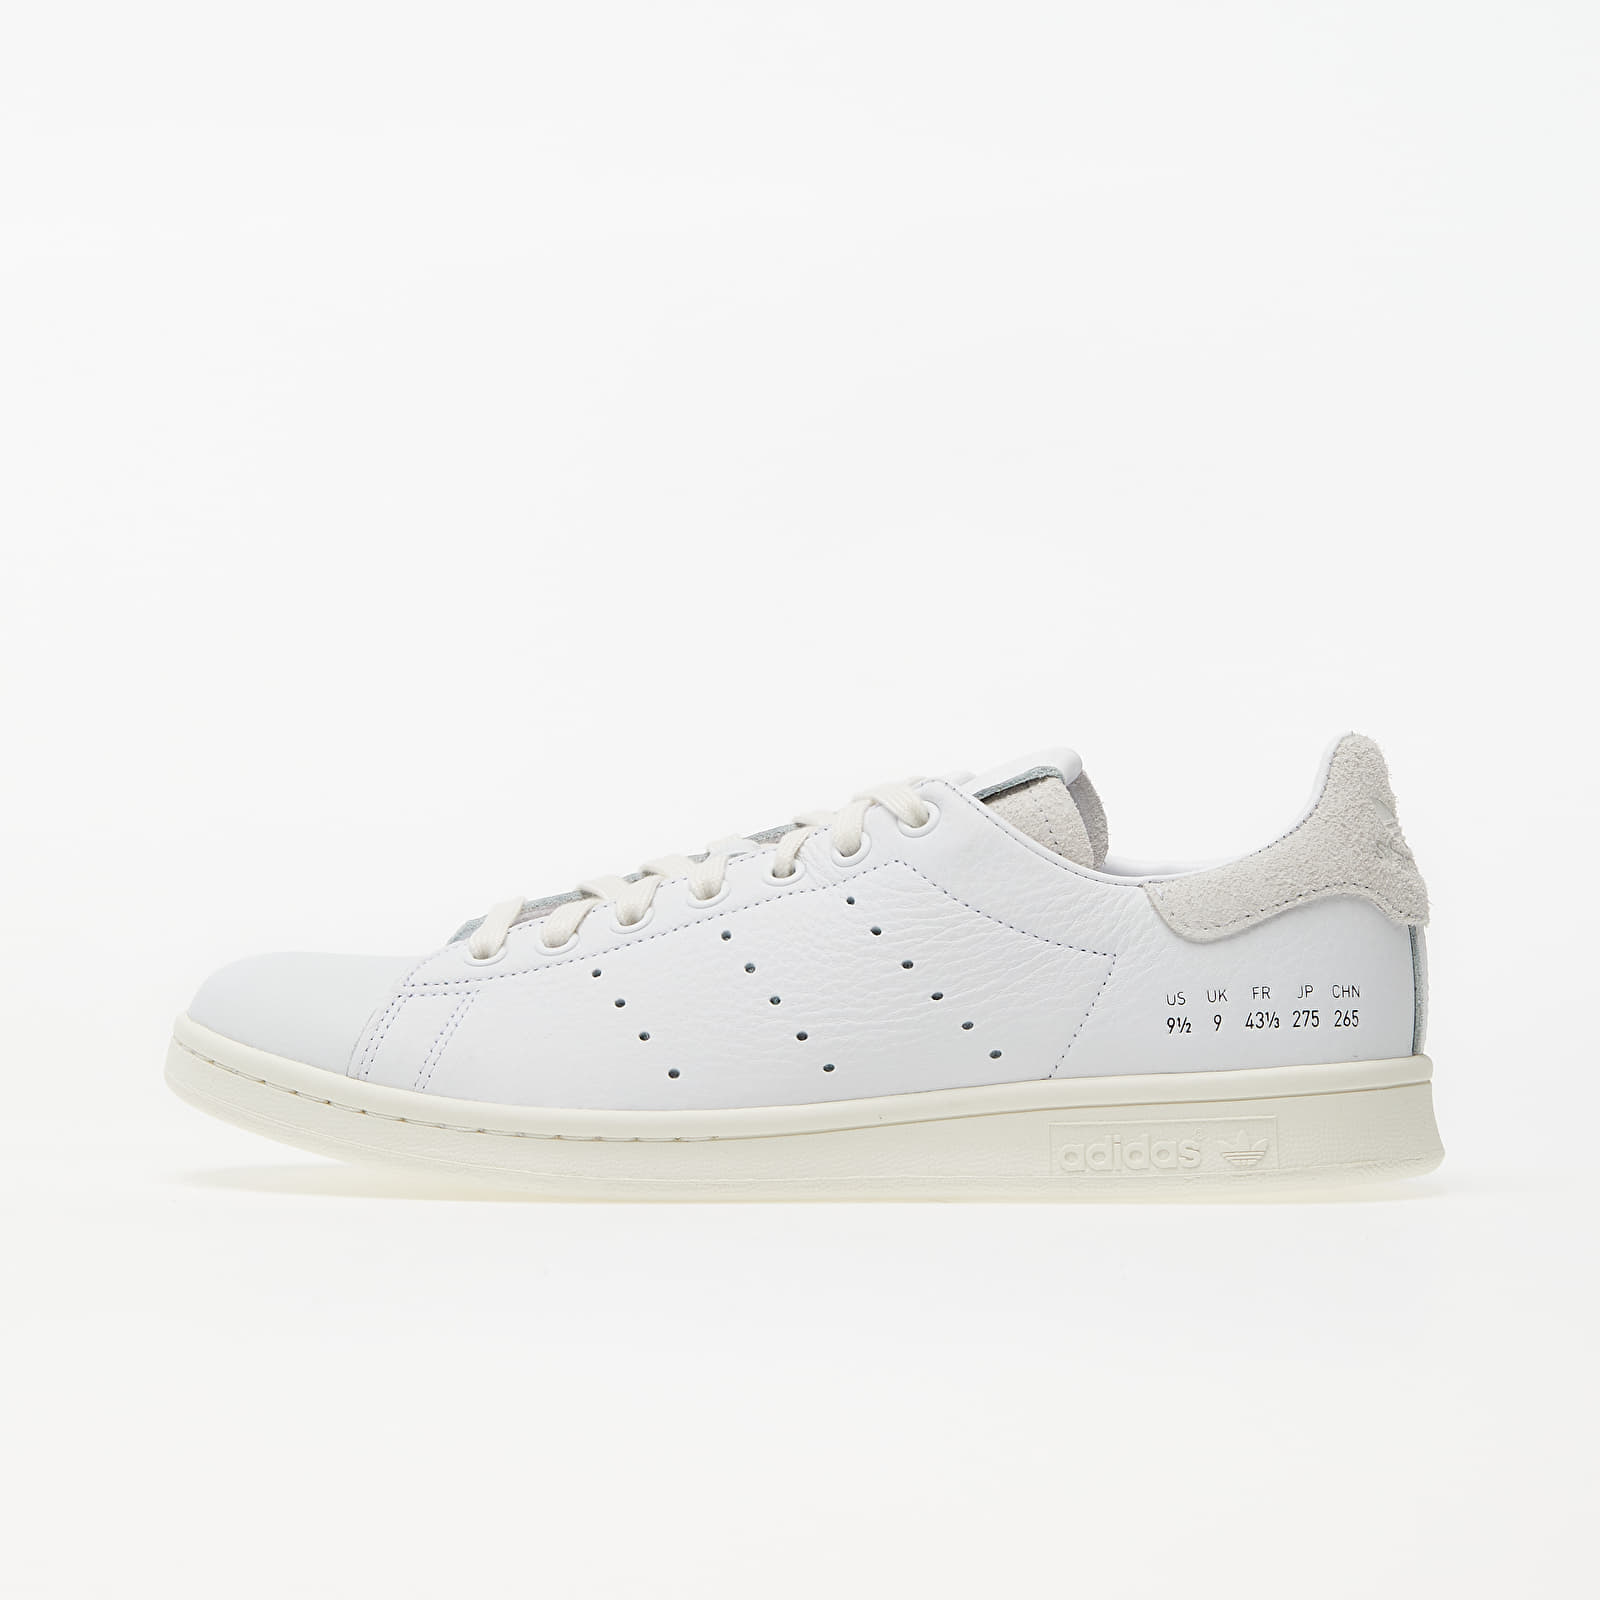 adidas Stan Smith Ftw White/ Crystal White/ Off White EUR 44